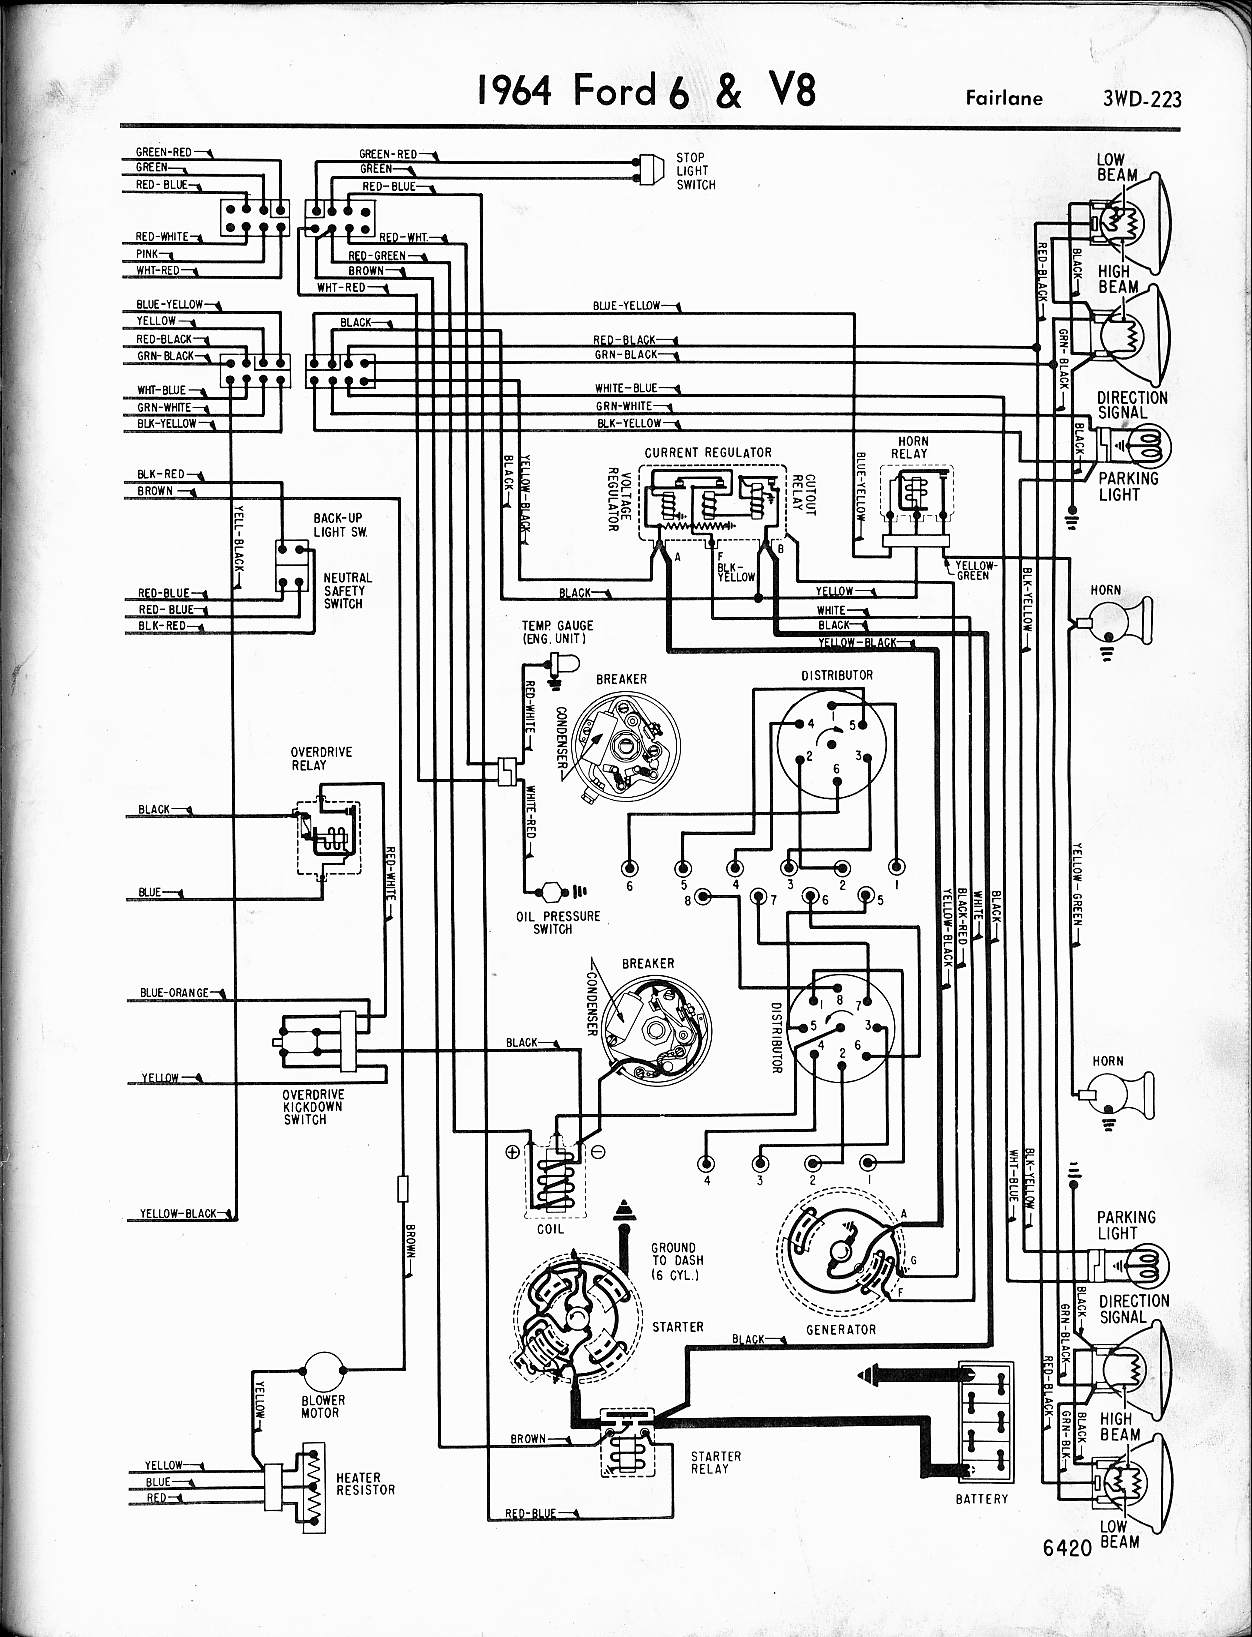 1964 thunderbird fuse box diagram 57-65 ford wiring diagrams